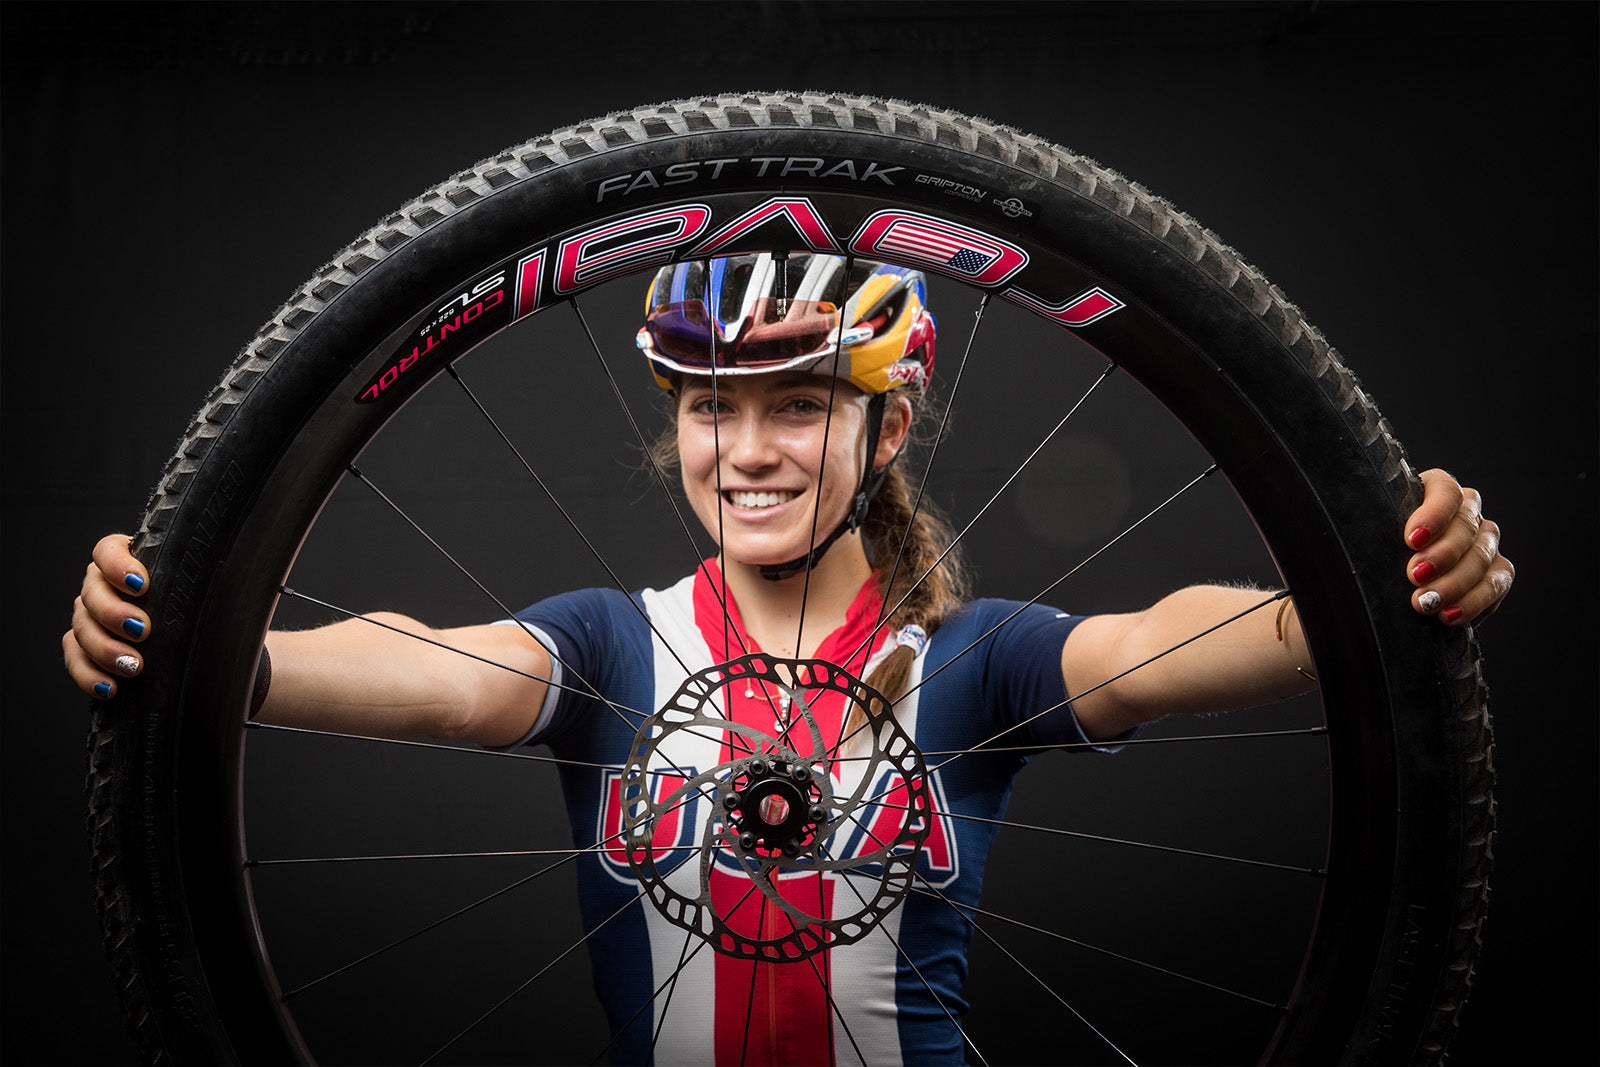 USA female cyclist holding Roval wheel in front of face